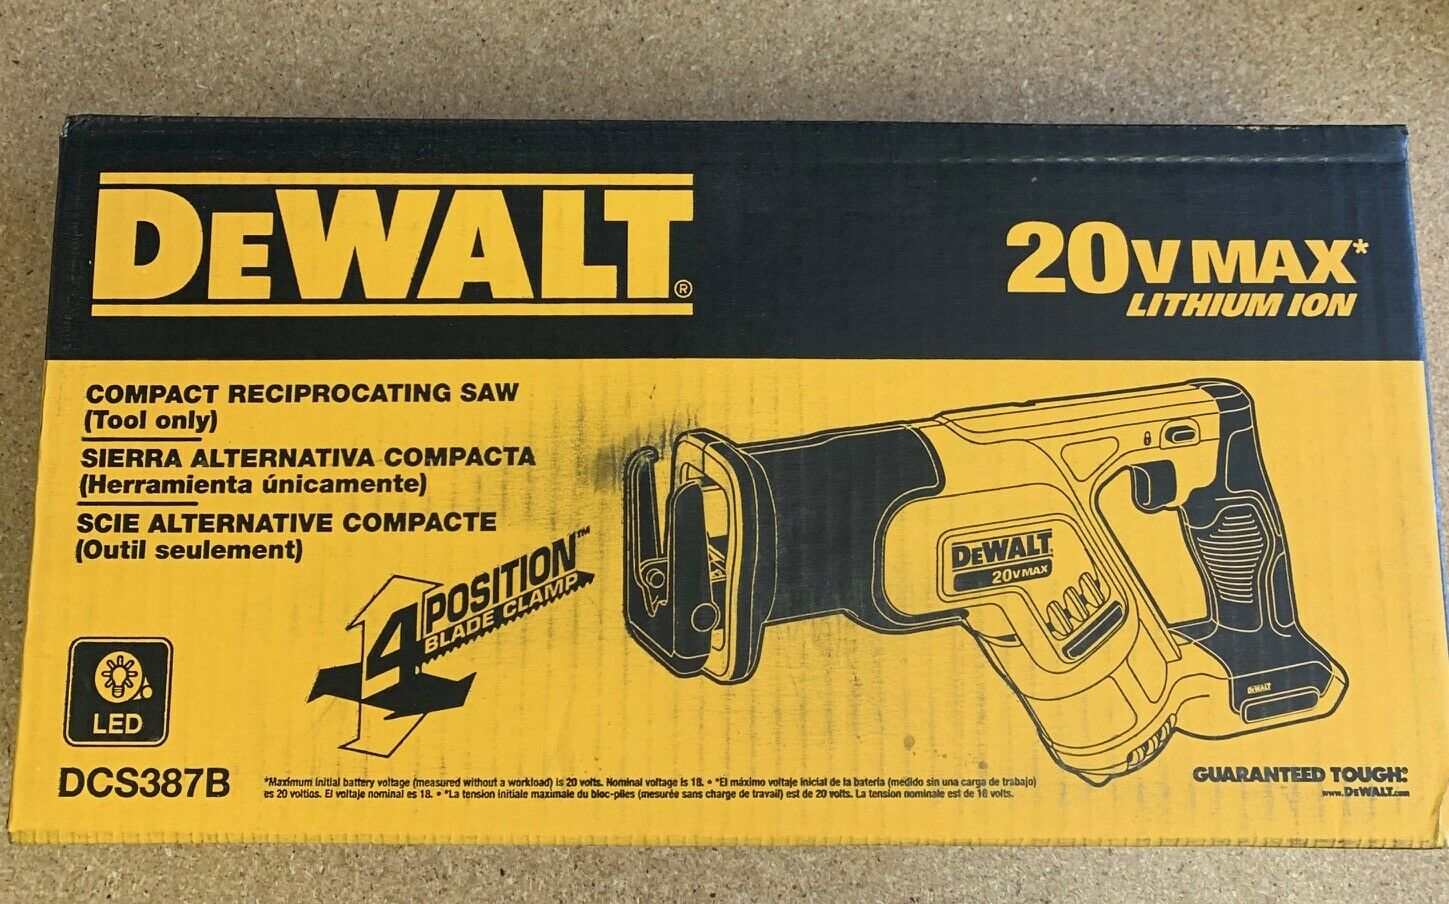 DeWALT DCS387B 20V Max* Cordless Compact Reciprocating Saw